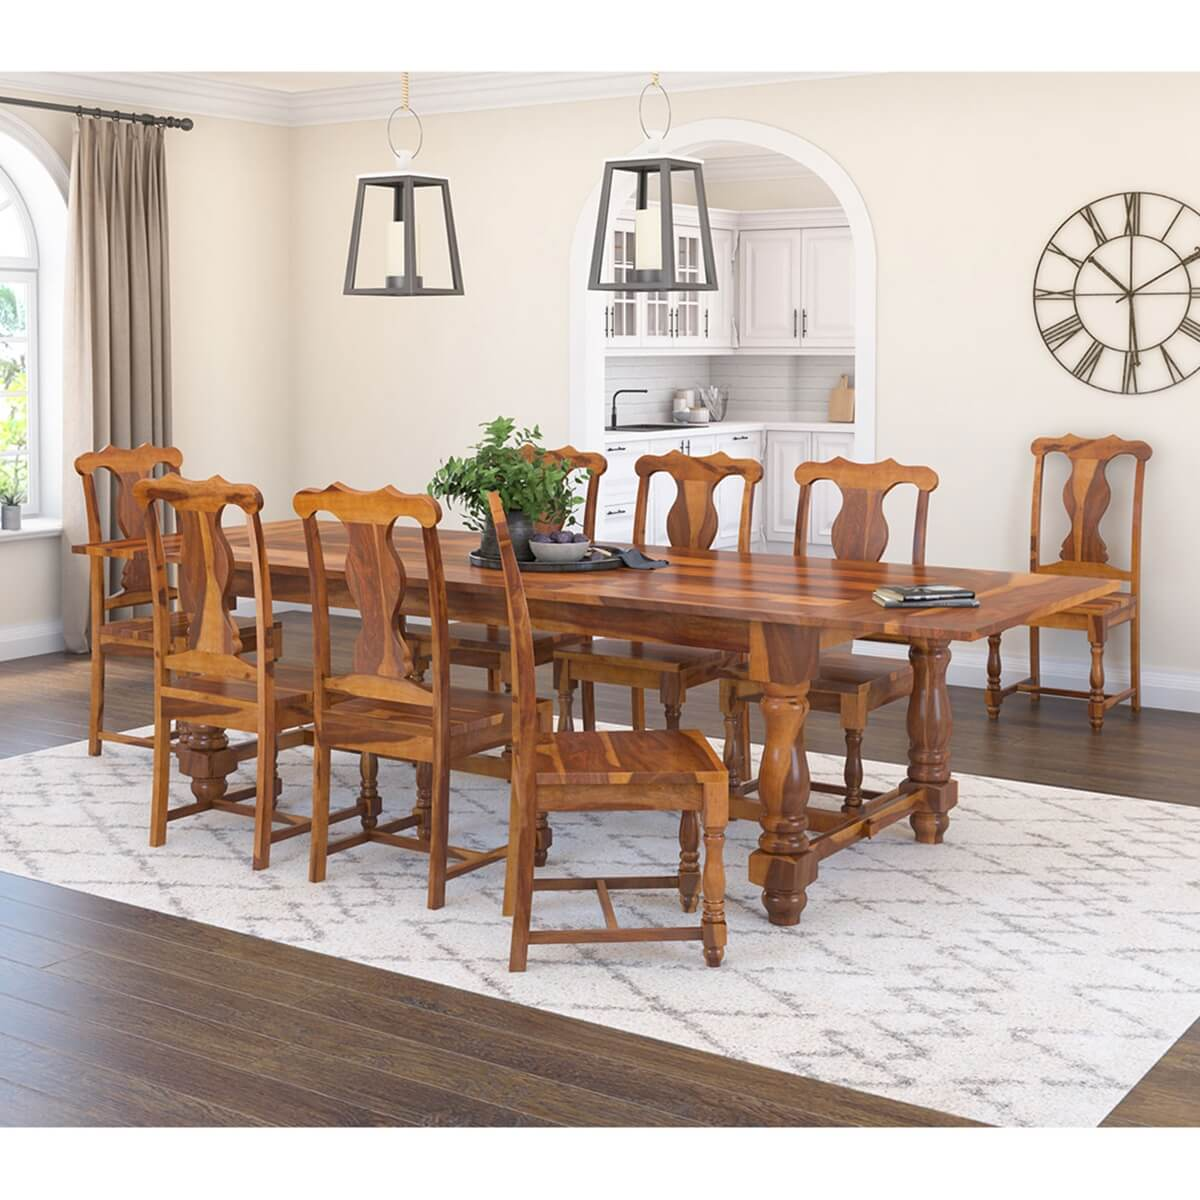 Rustic solid wood dining table chair set furniture w for Dinner table wood